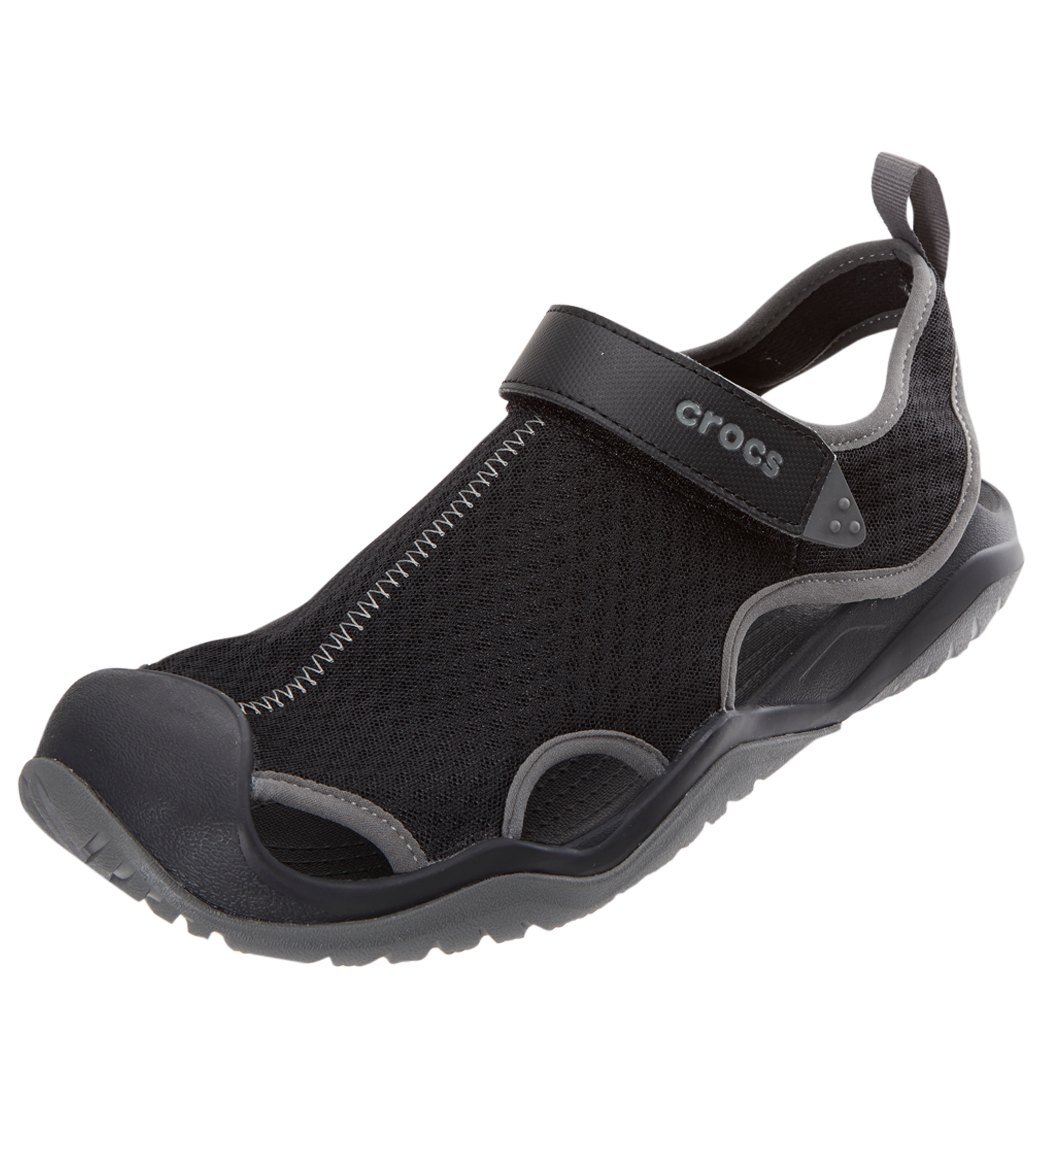 32d960be9406 Crocs Swiftwater Mesh Deck Sandal at SwimOutlet.com - Free Shipping